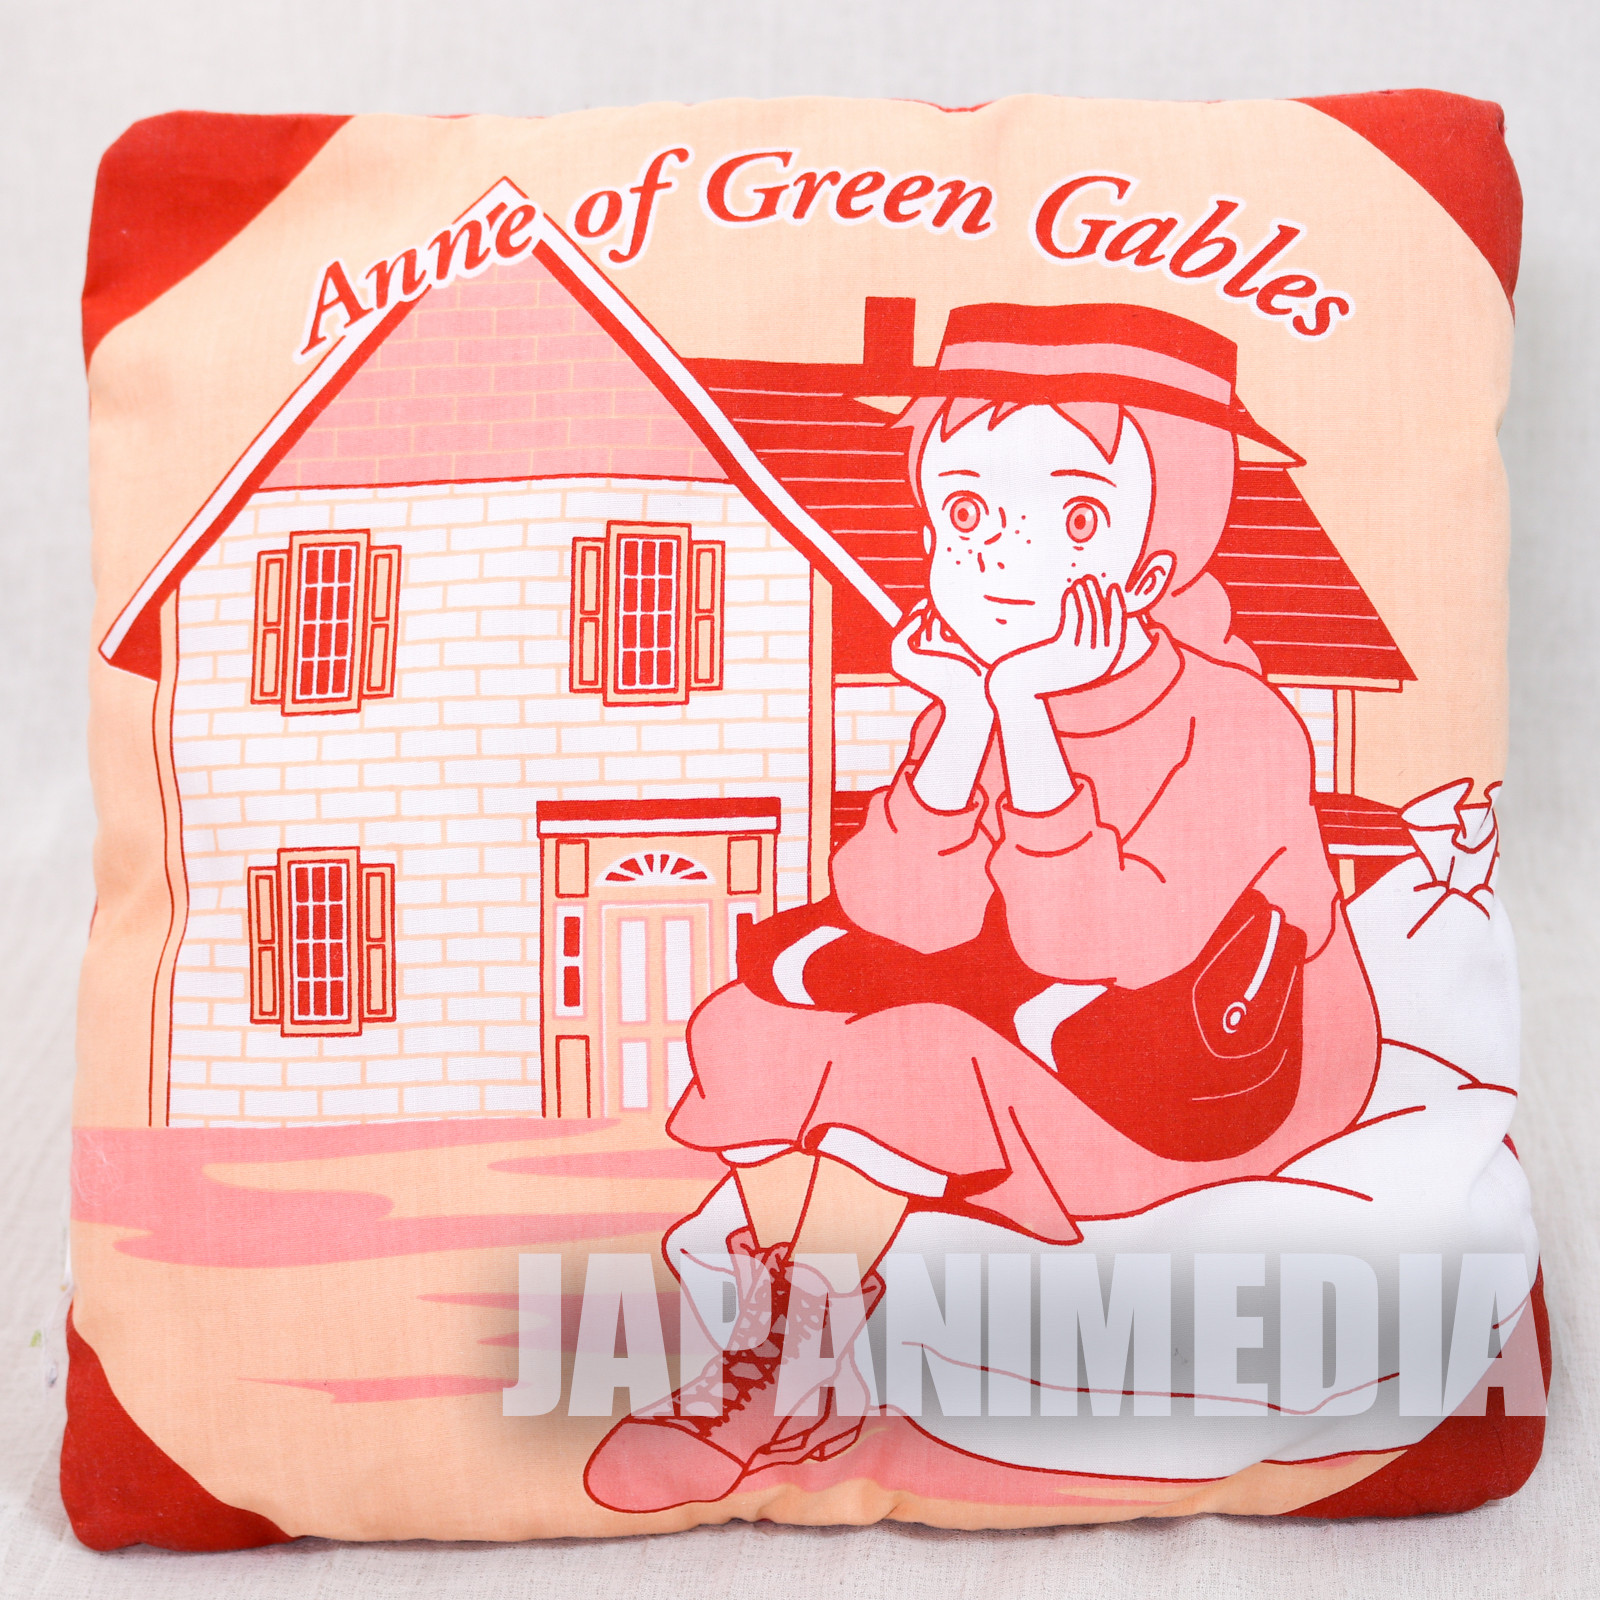 {Damaged} Anne of Green Gables Small Size Cushion World Masterpiece Theater ANIME